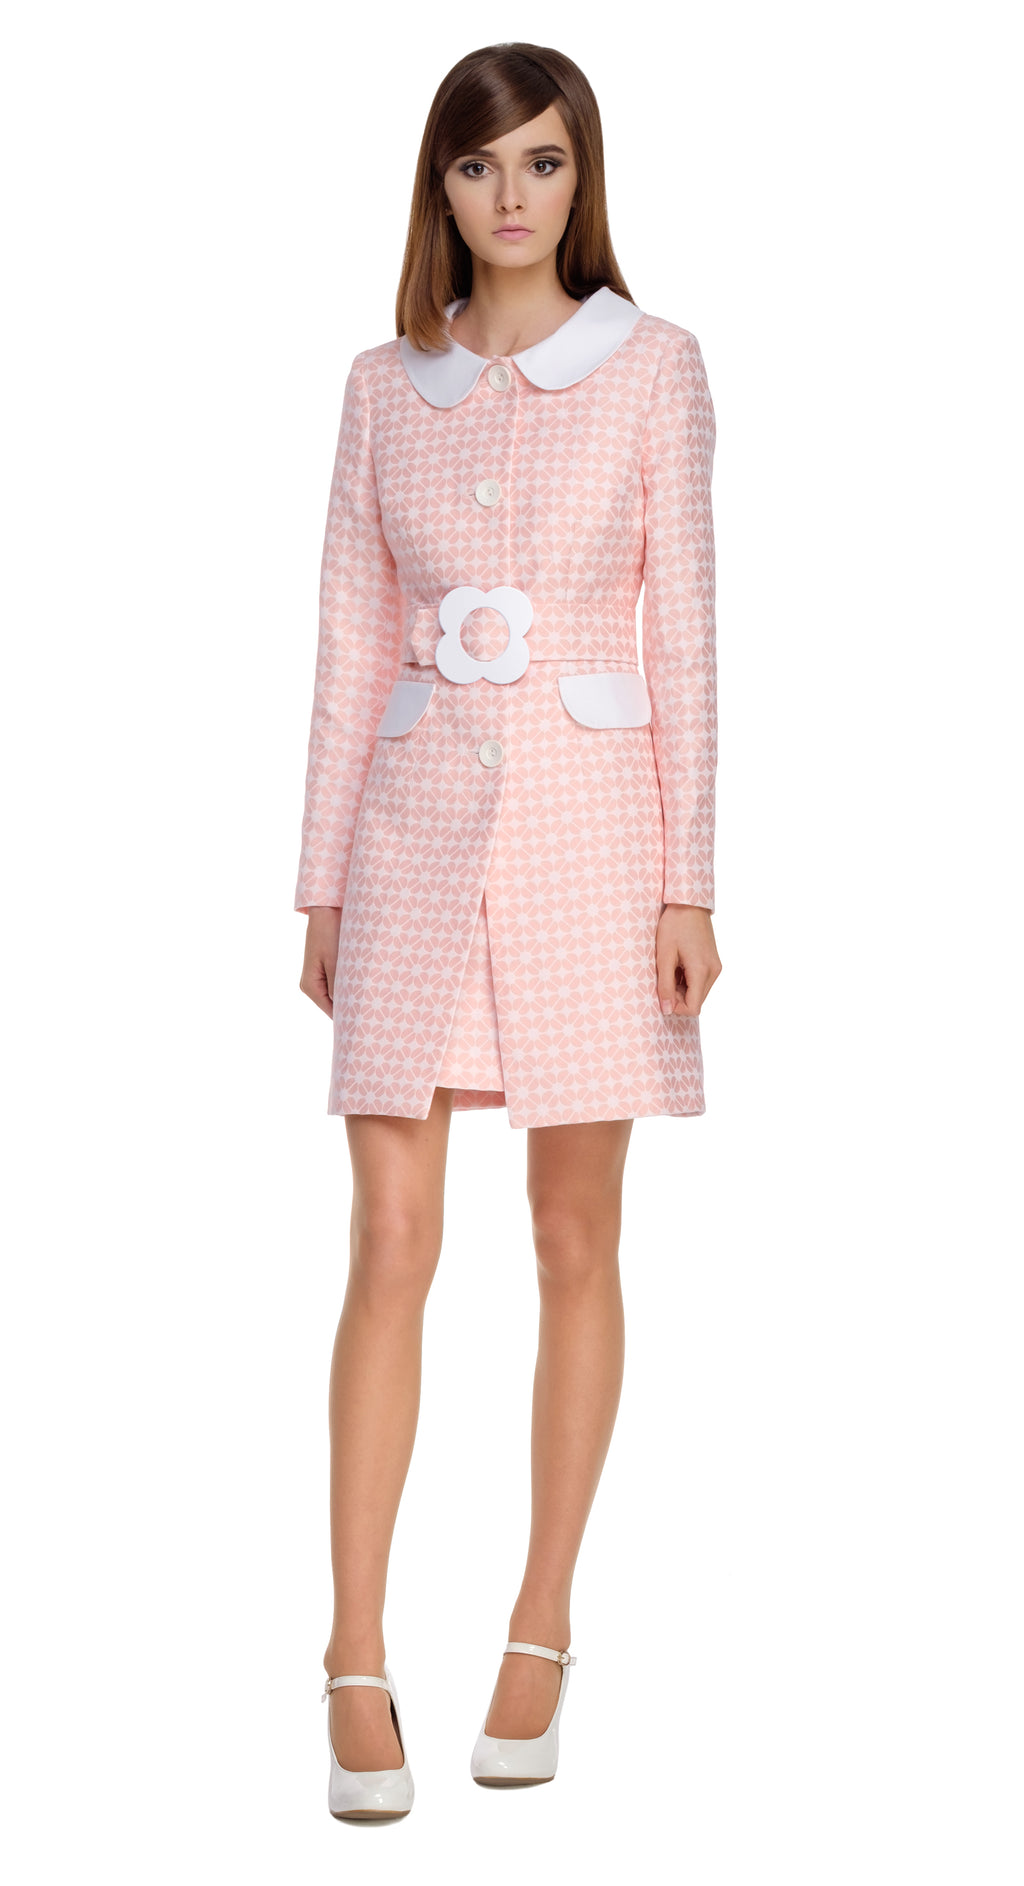 PINK GEOMETRIC PATTERN COAT WITH FLOWER BUCKLE